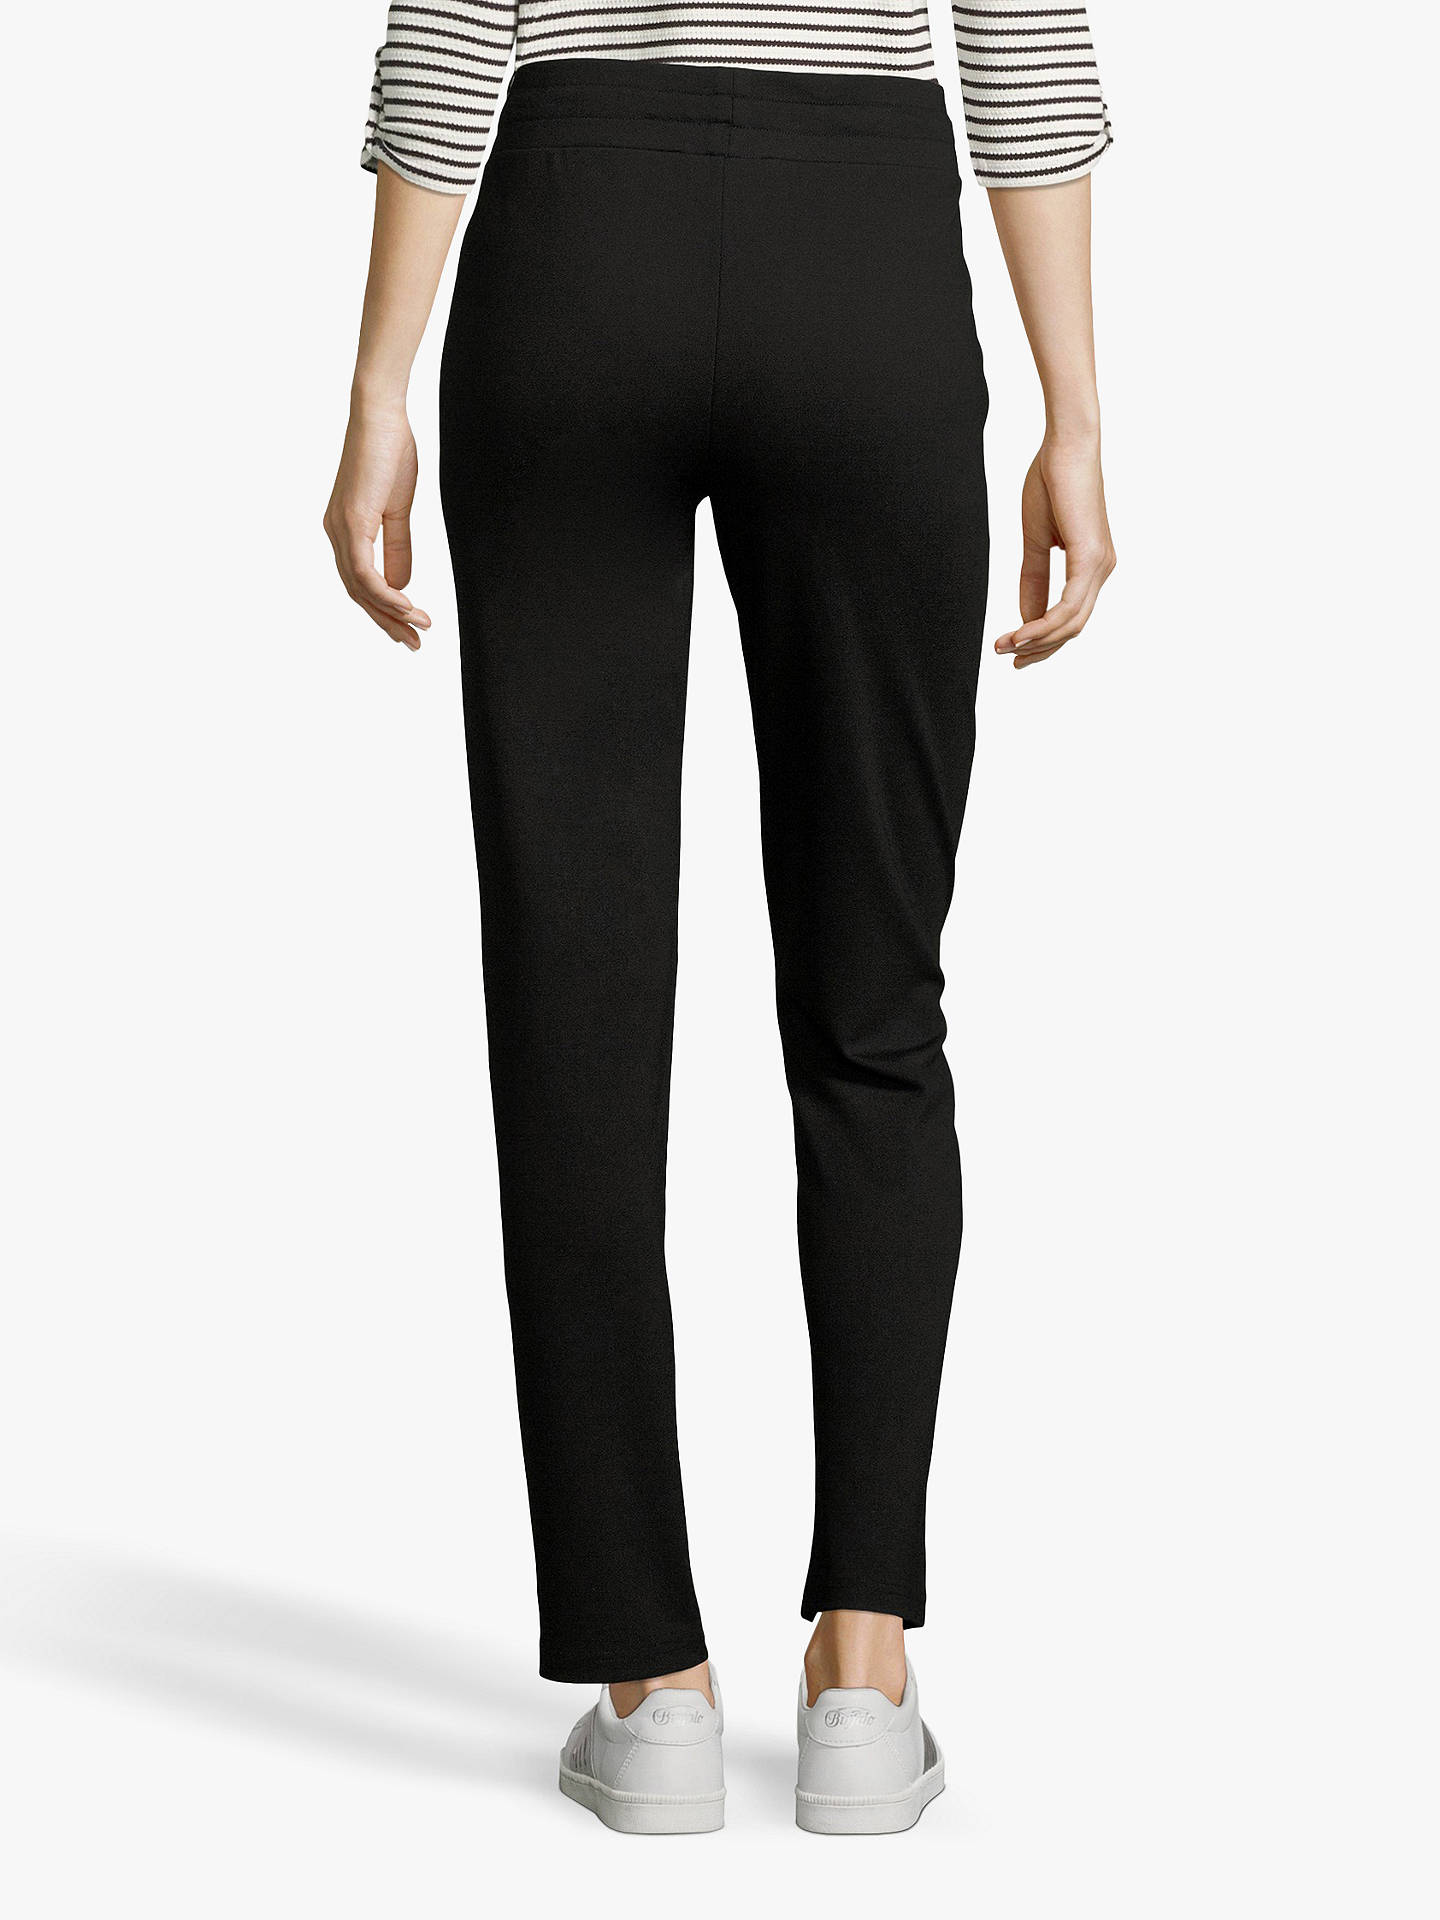 Buy Betty Barclay Embellished Pull On Trousers, Black, 18 Online at johnlewis.com